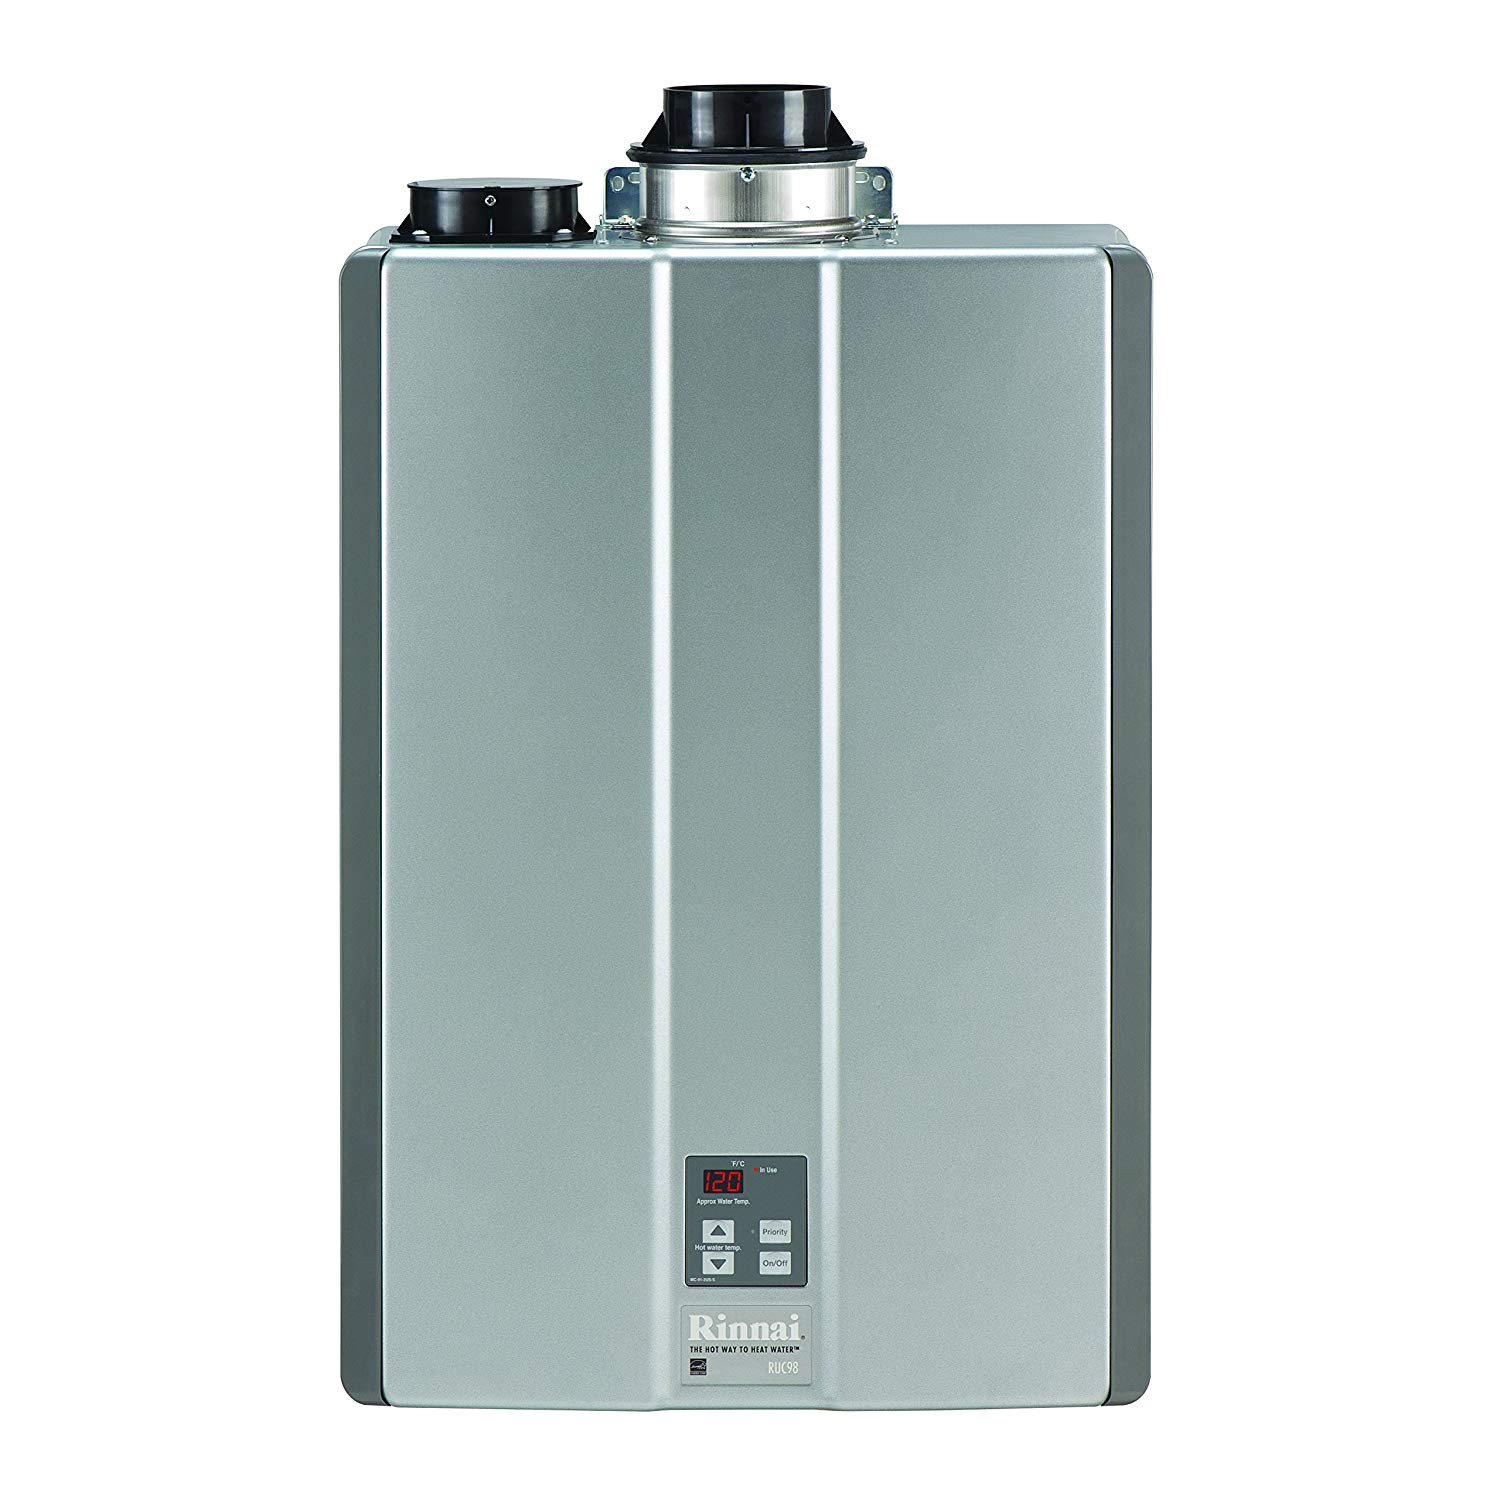 rinnai ruc98in ultra series natural gas tankless water heater twin pipe amazon com